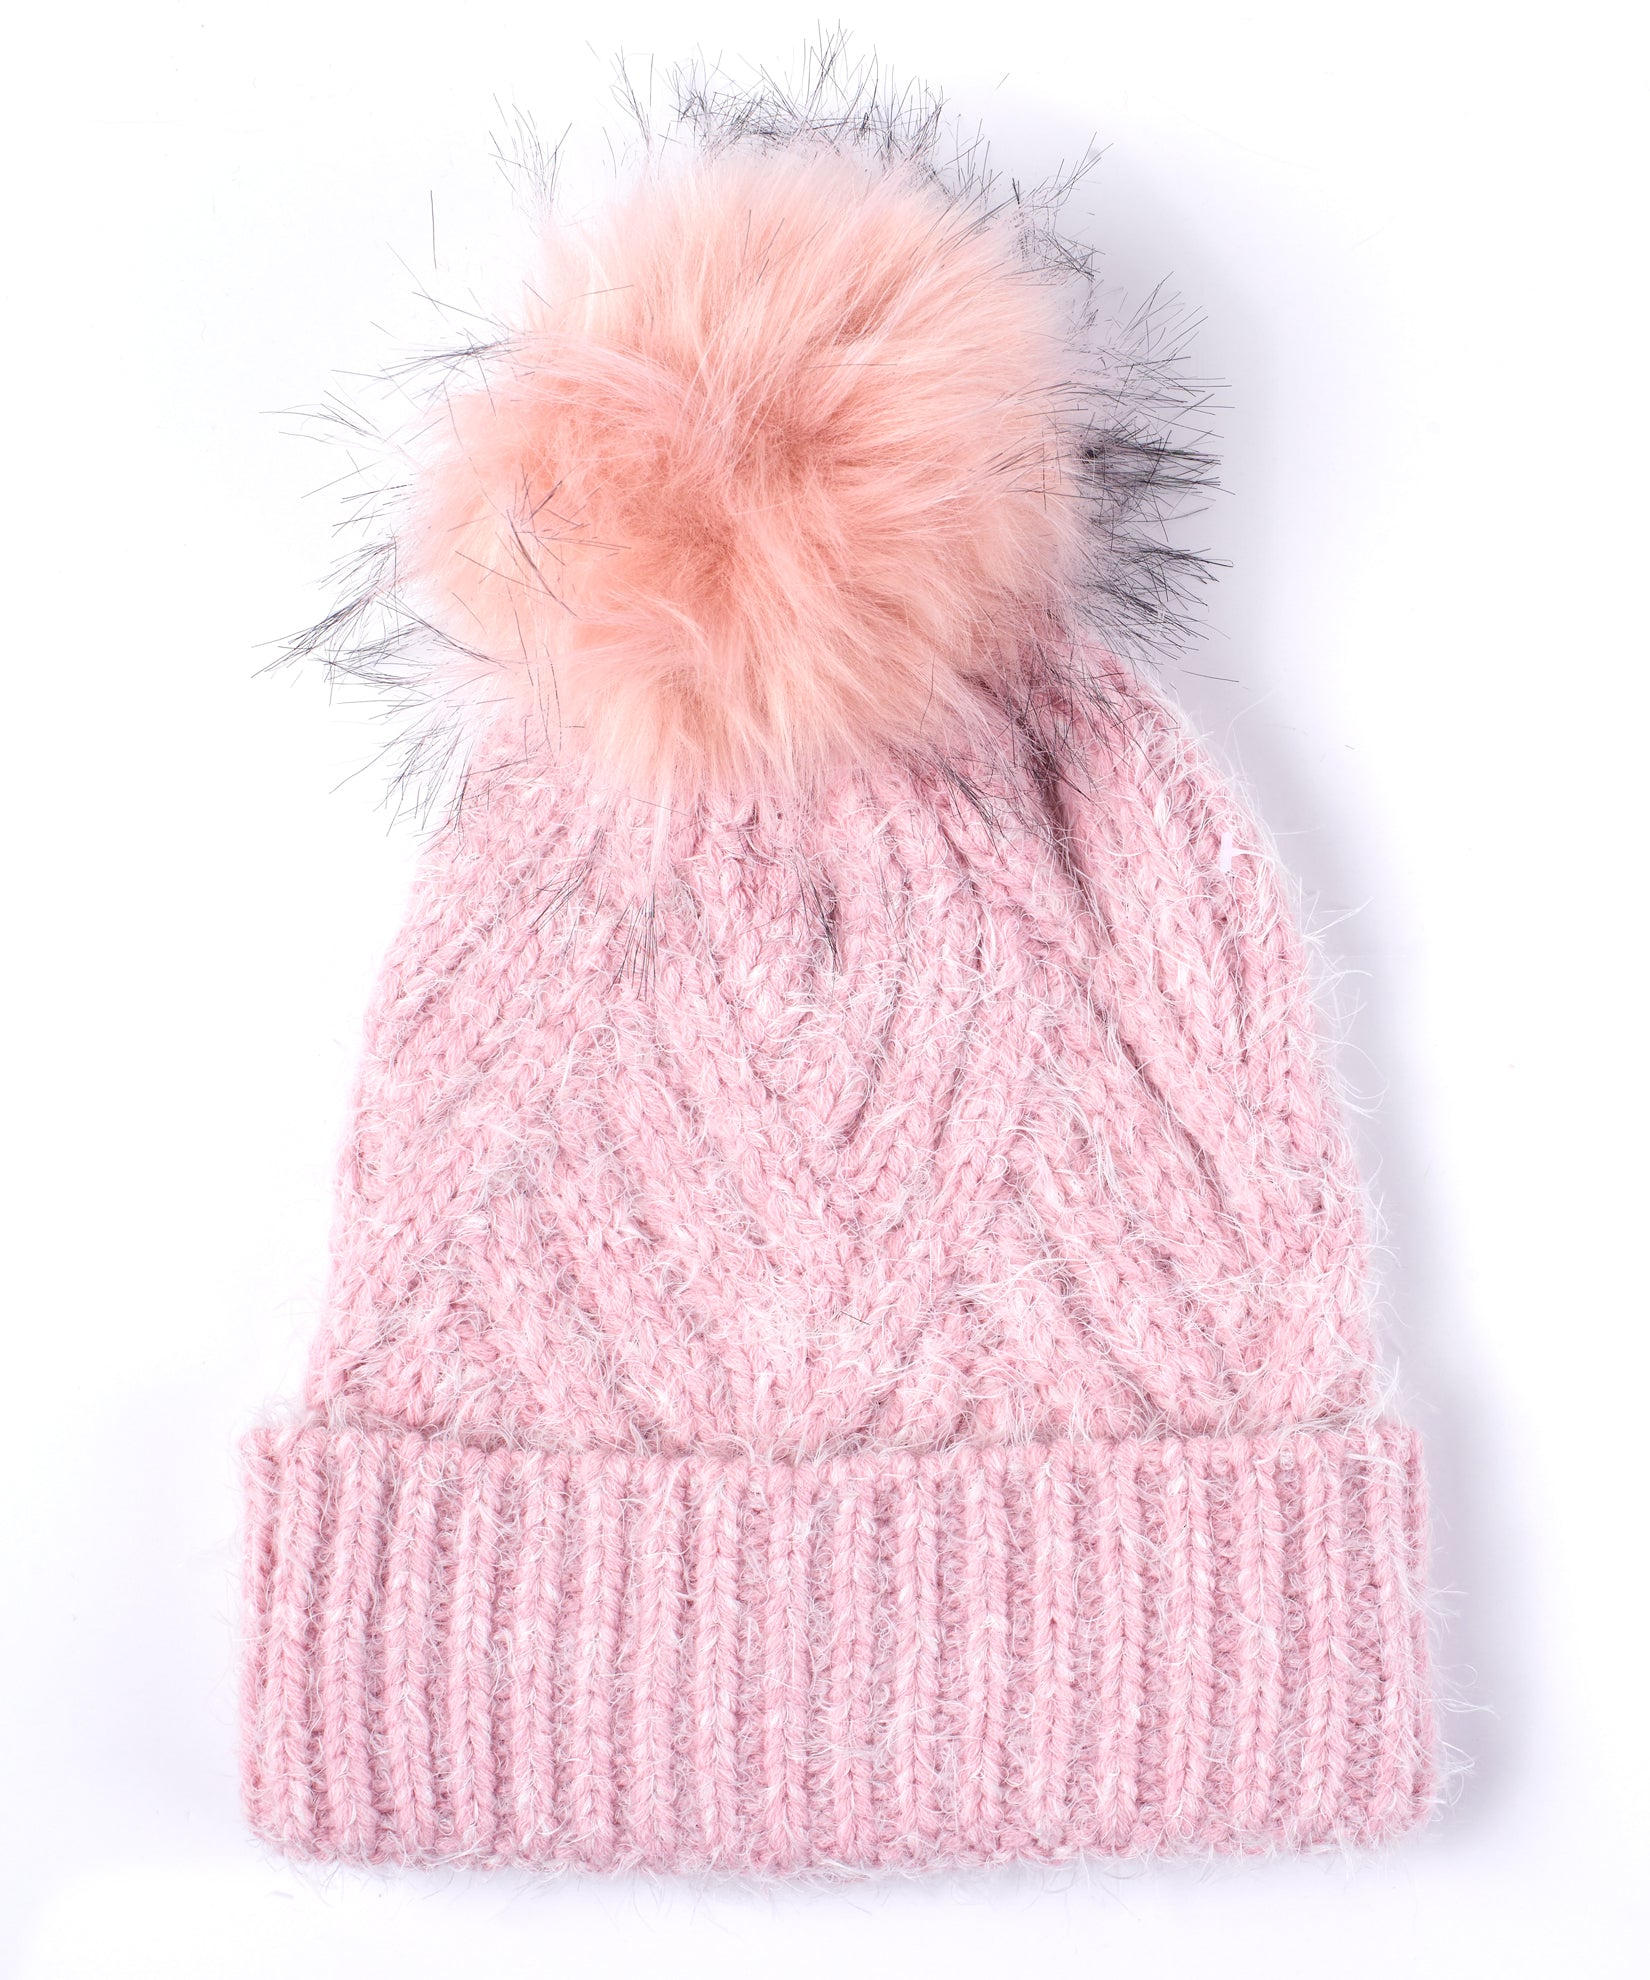 Jaipur Pink - Fuzzy Cable Hat With Pom